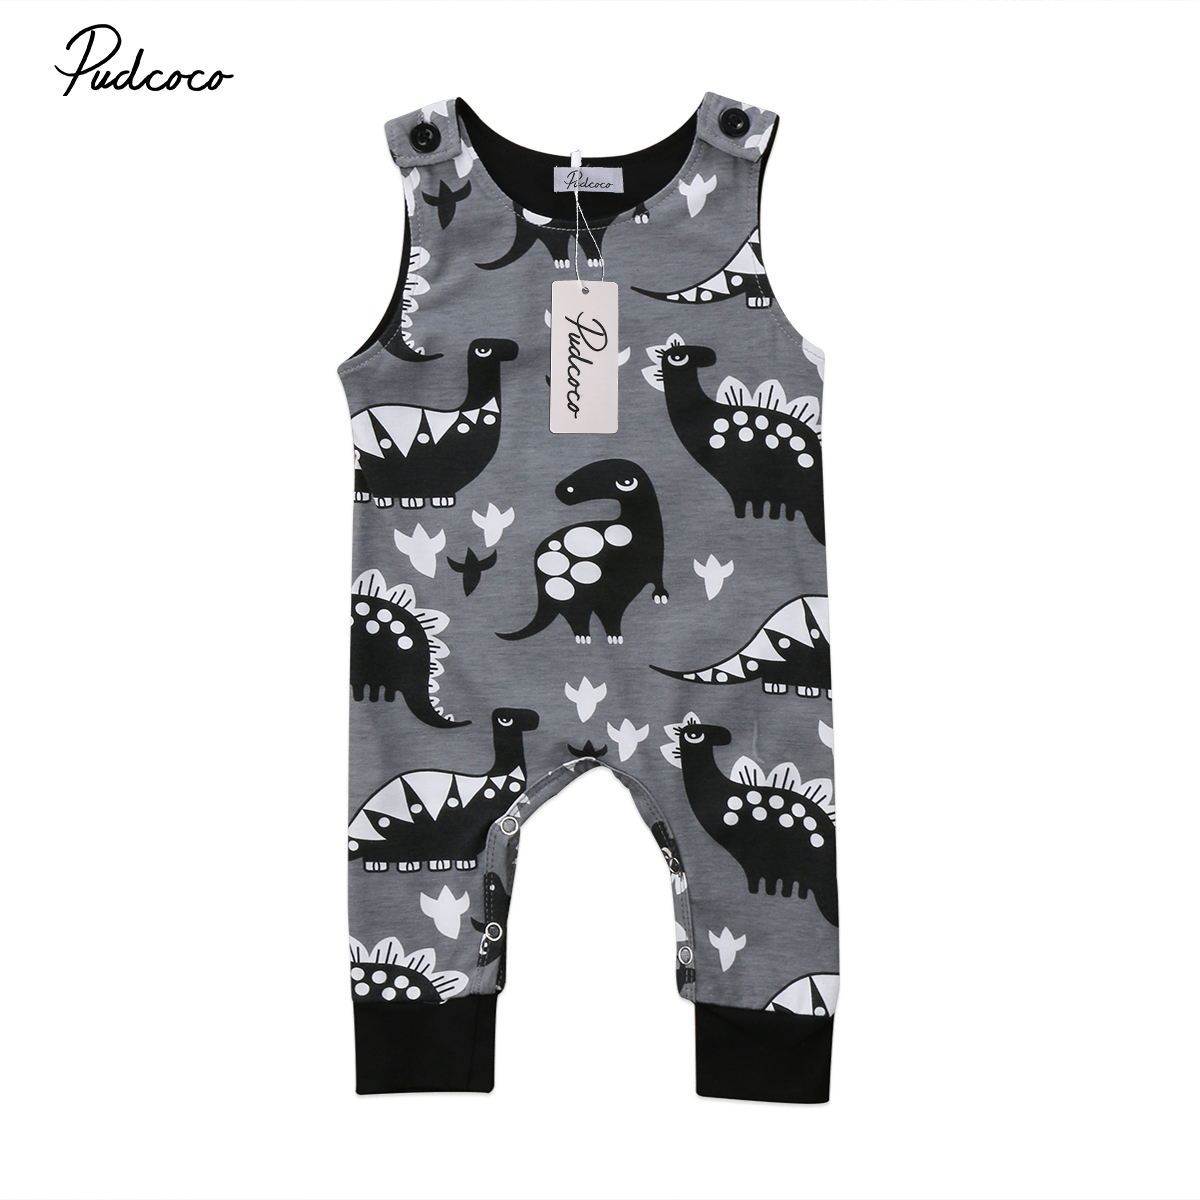 Pudcoco Newborn Infant Baby Boy Girl Dinosaur Romper Sleeveless Jumpsuit Playsuit One-Pieces Clothes Outfits puseky 2017 infant romper baby boys girls jumpsuit newborn bebe clothing hooded toddler baby clothes cute panda romper costumes